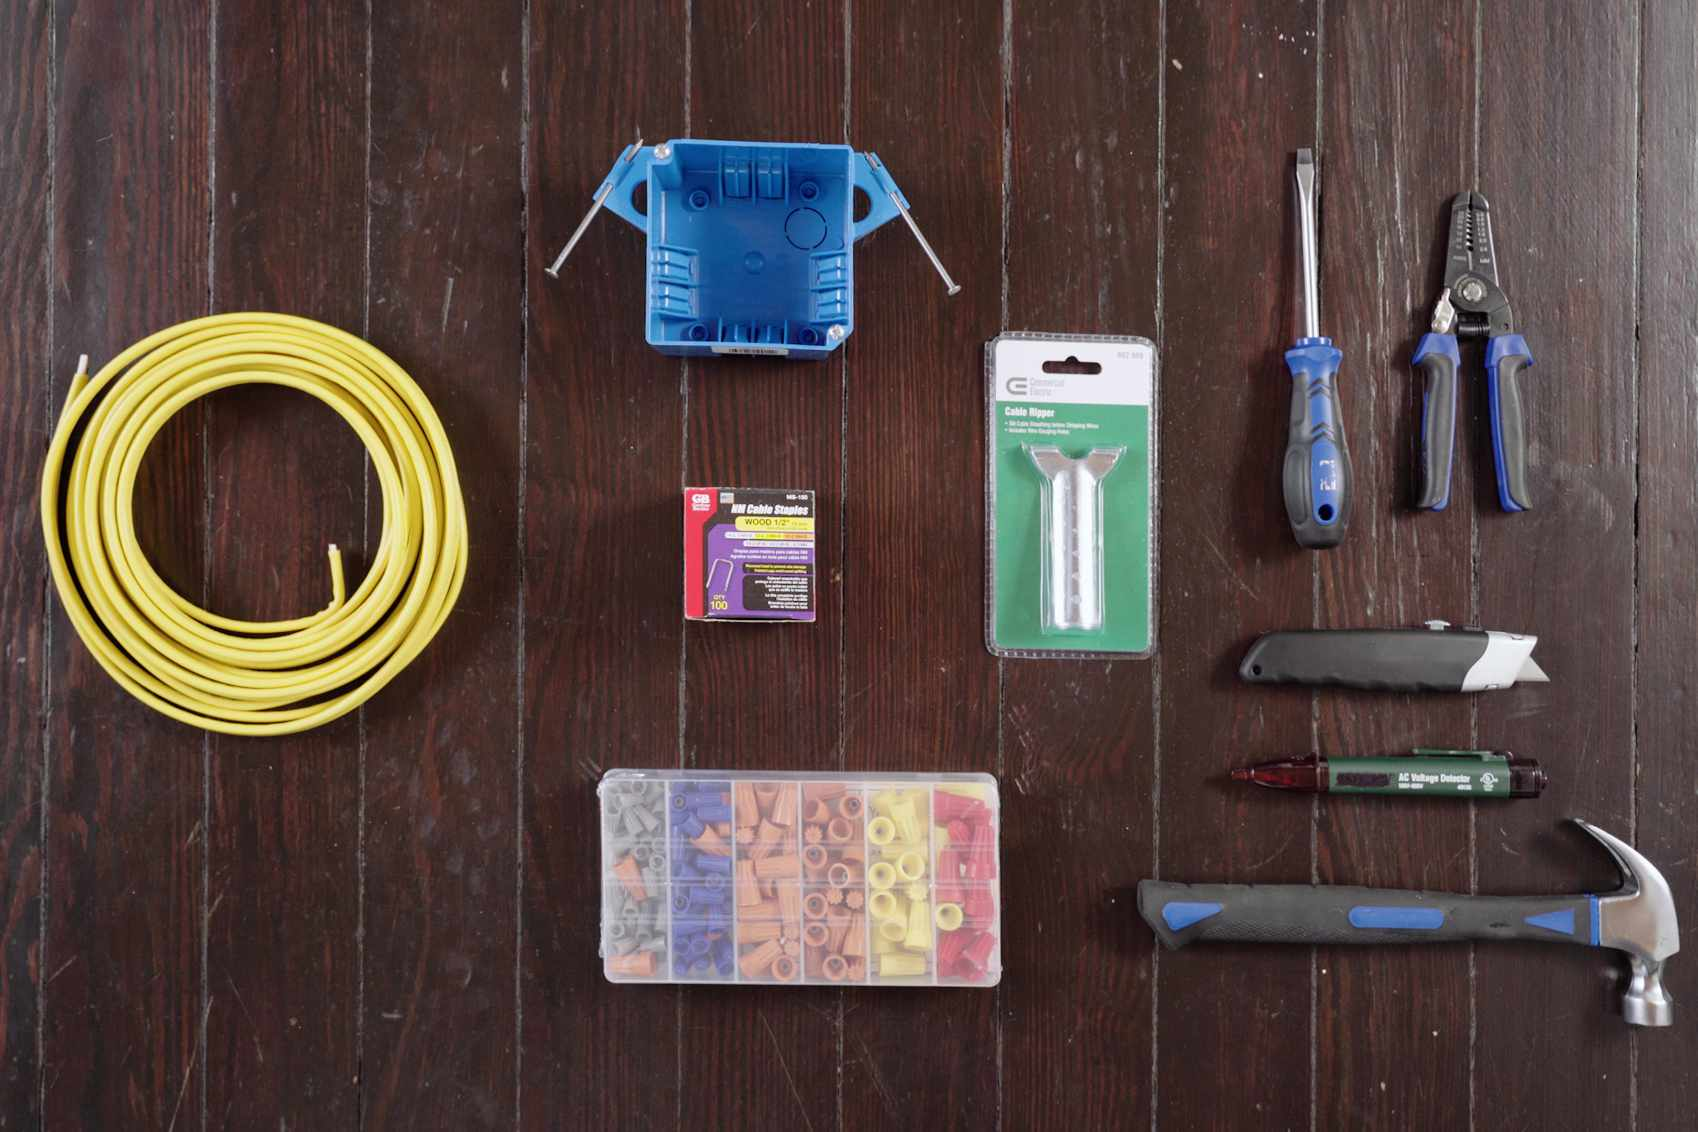 Materials and tools to install an electrical junction box